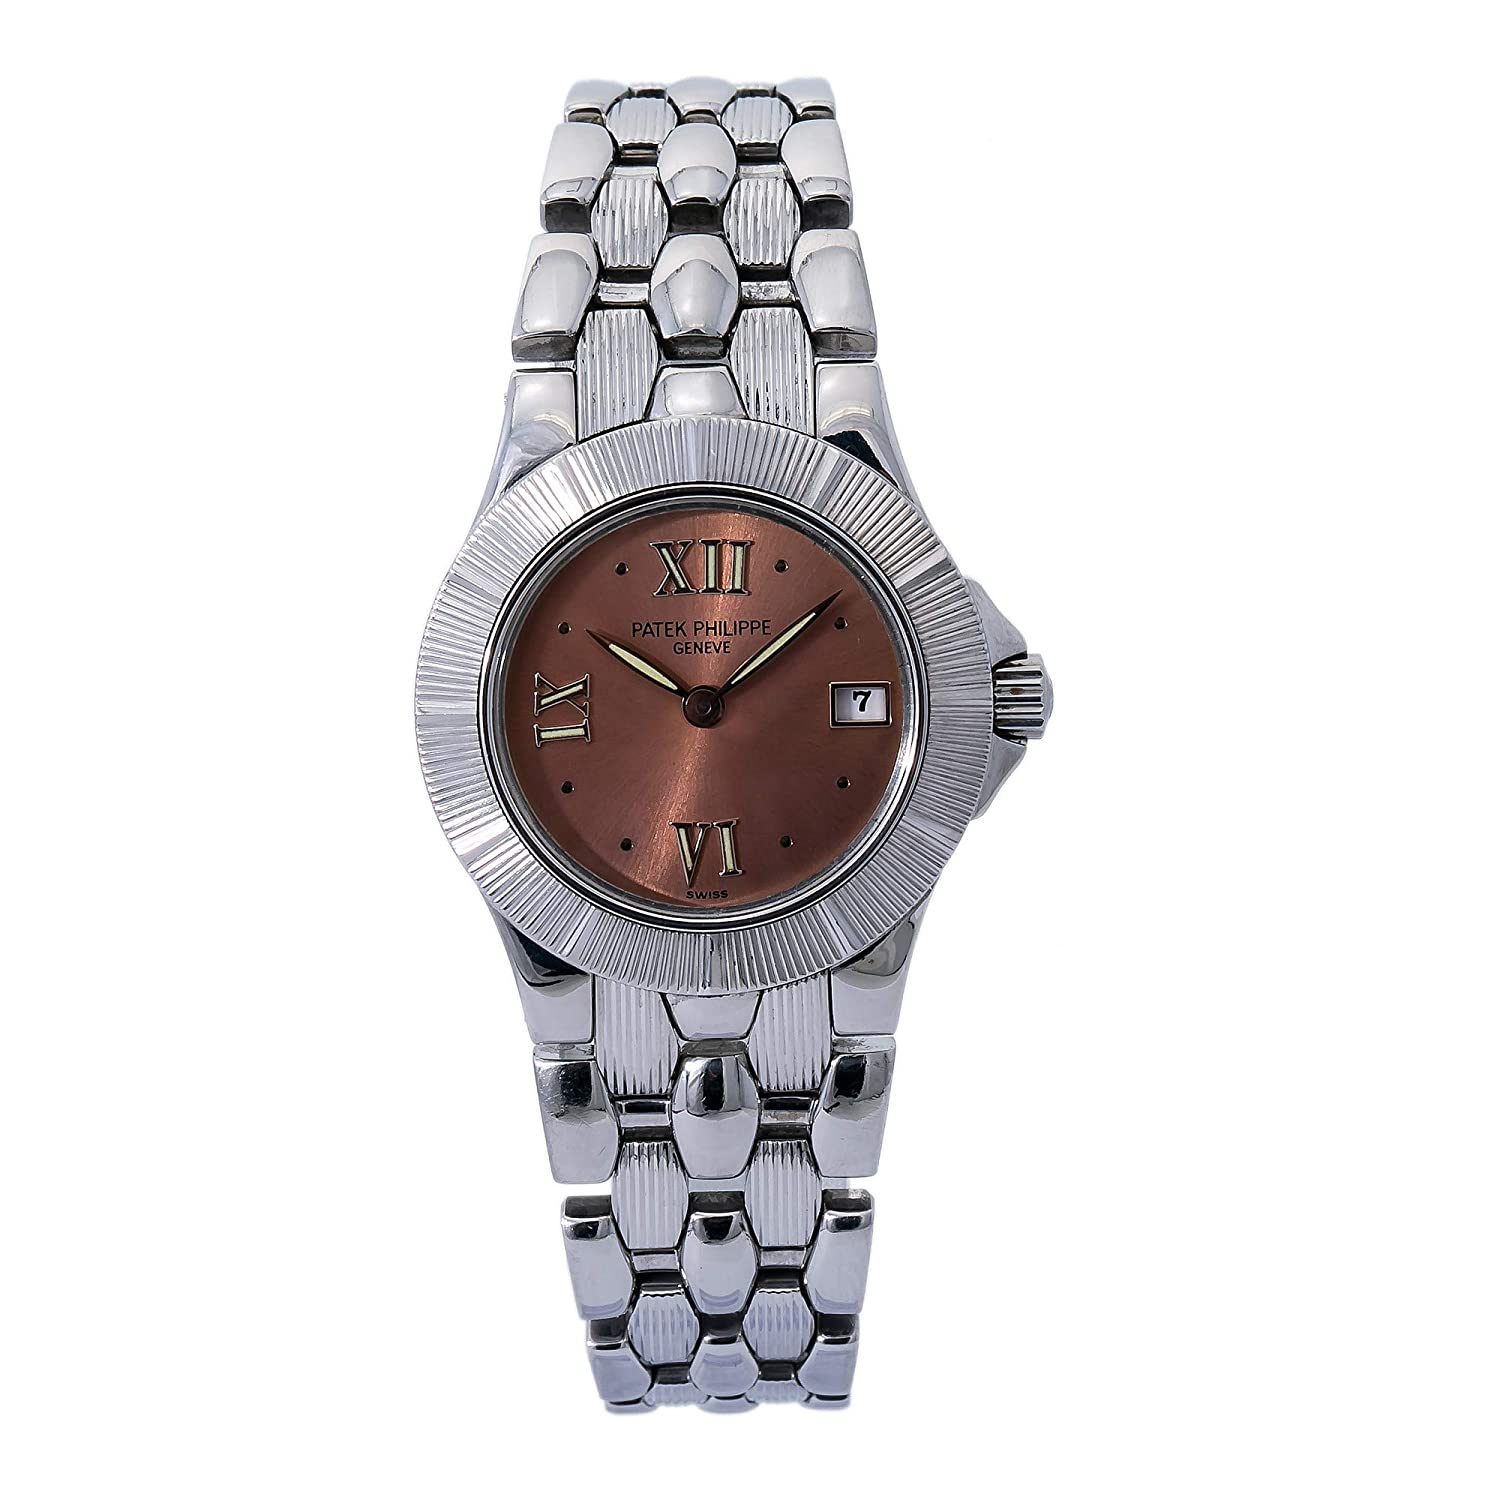 Image of Patek Philippe Neptune Quartz Female Watch 4880 (Certified Pre-Owned)